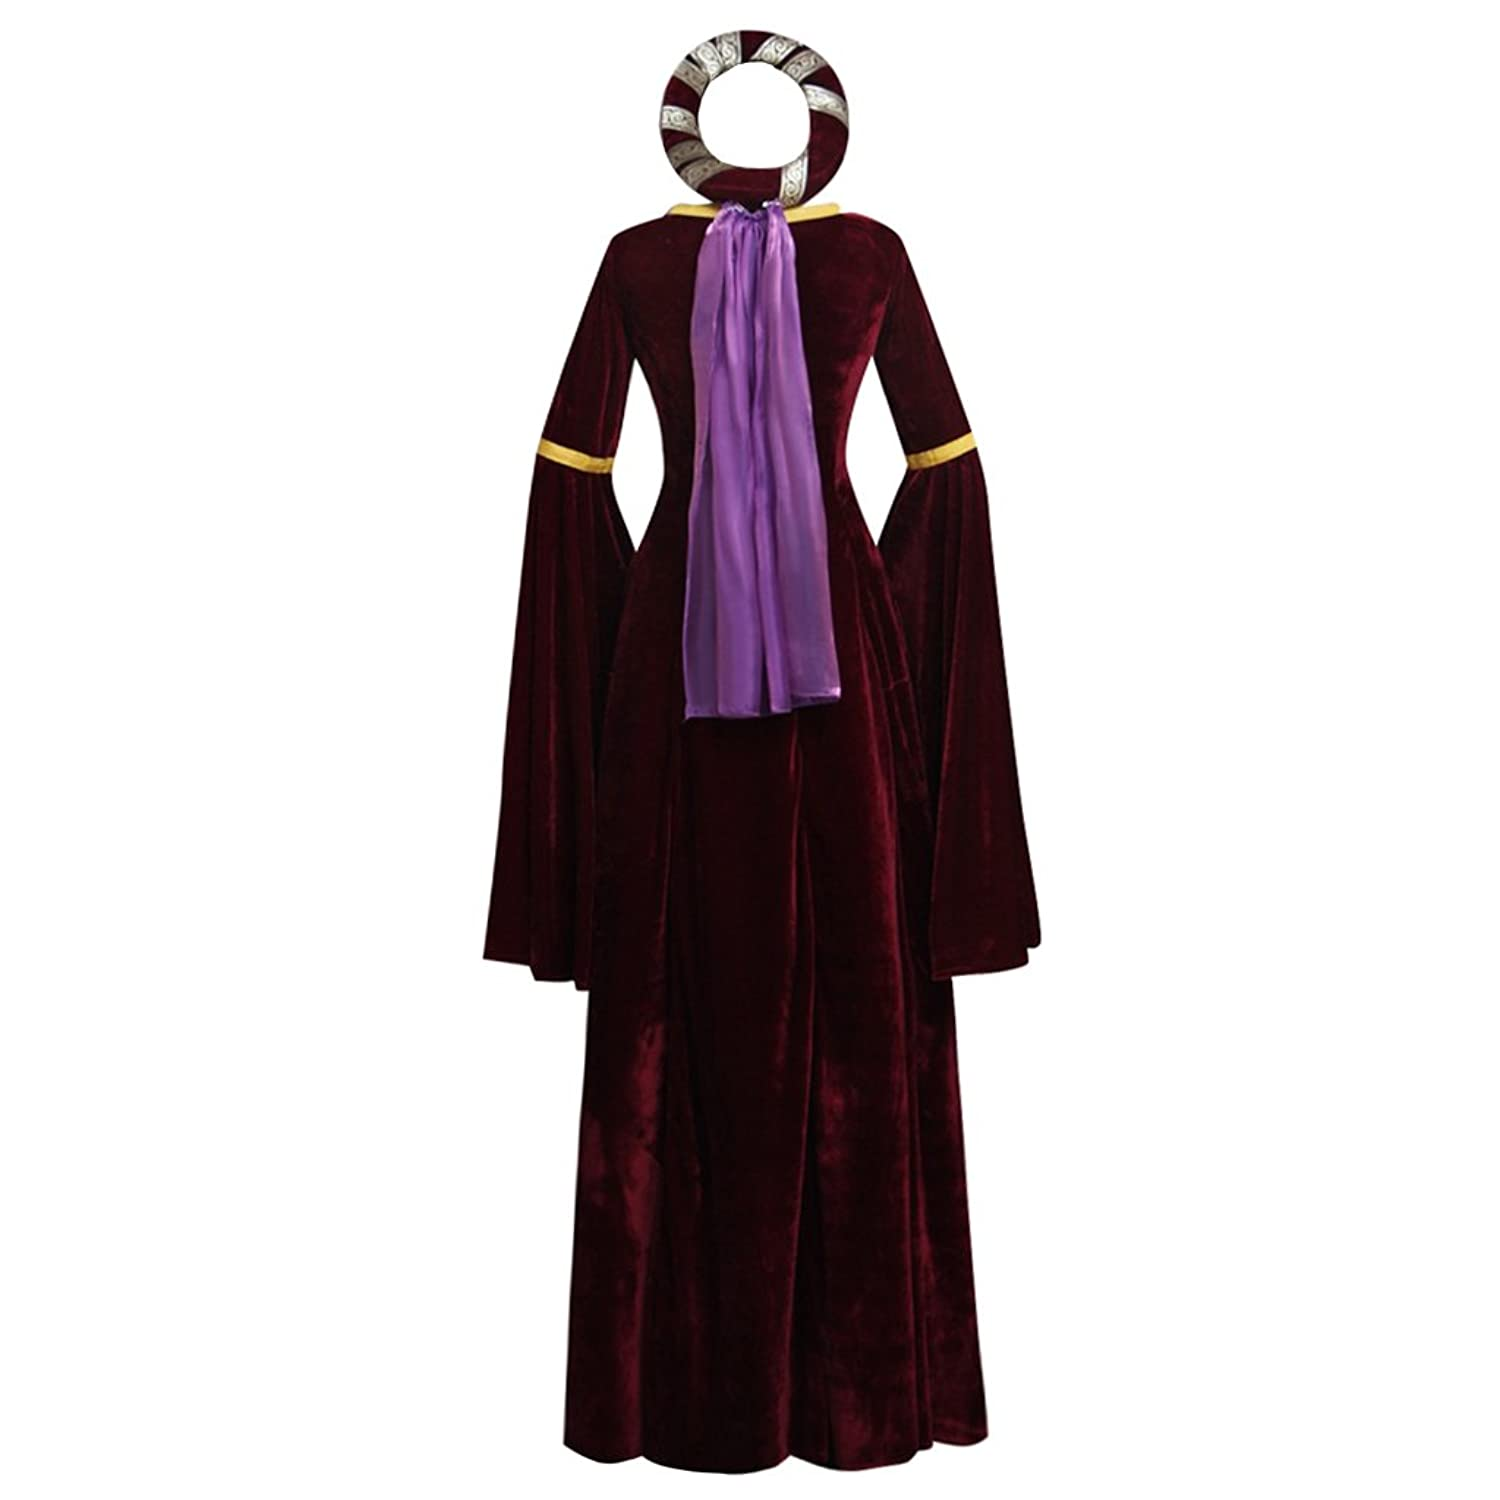 Women\'s Medieval Period Dress and Gown Costumes | Deluxe Theatrical ...